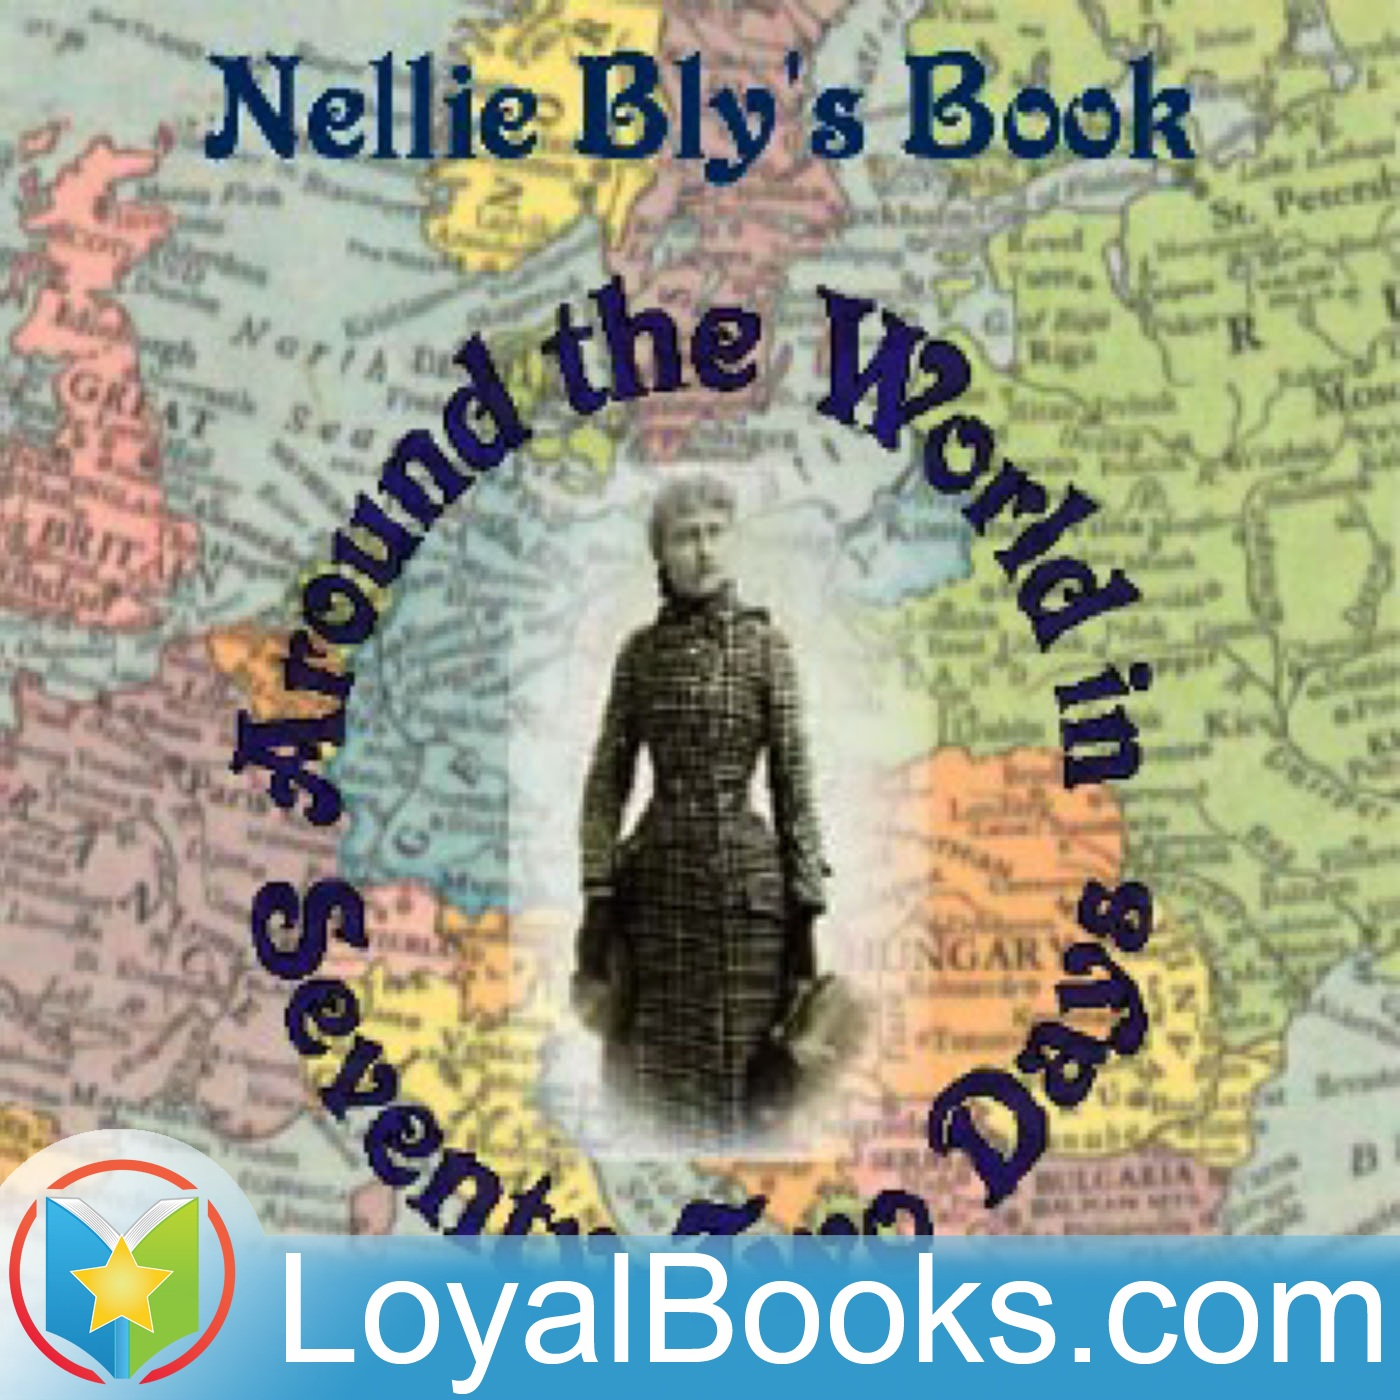 <![CDATA[Around the World in Seventy-Two Days by Nellie Bly]]>